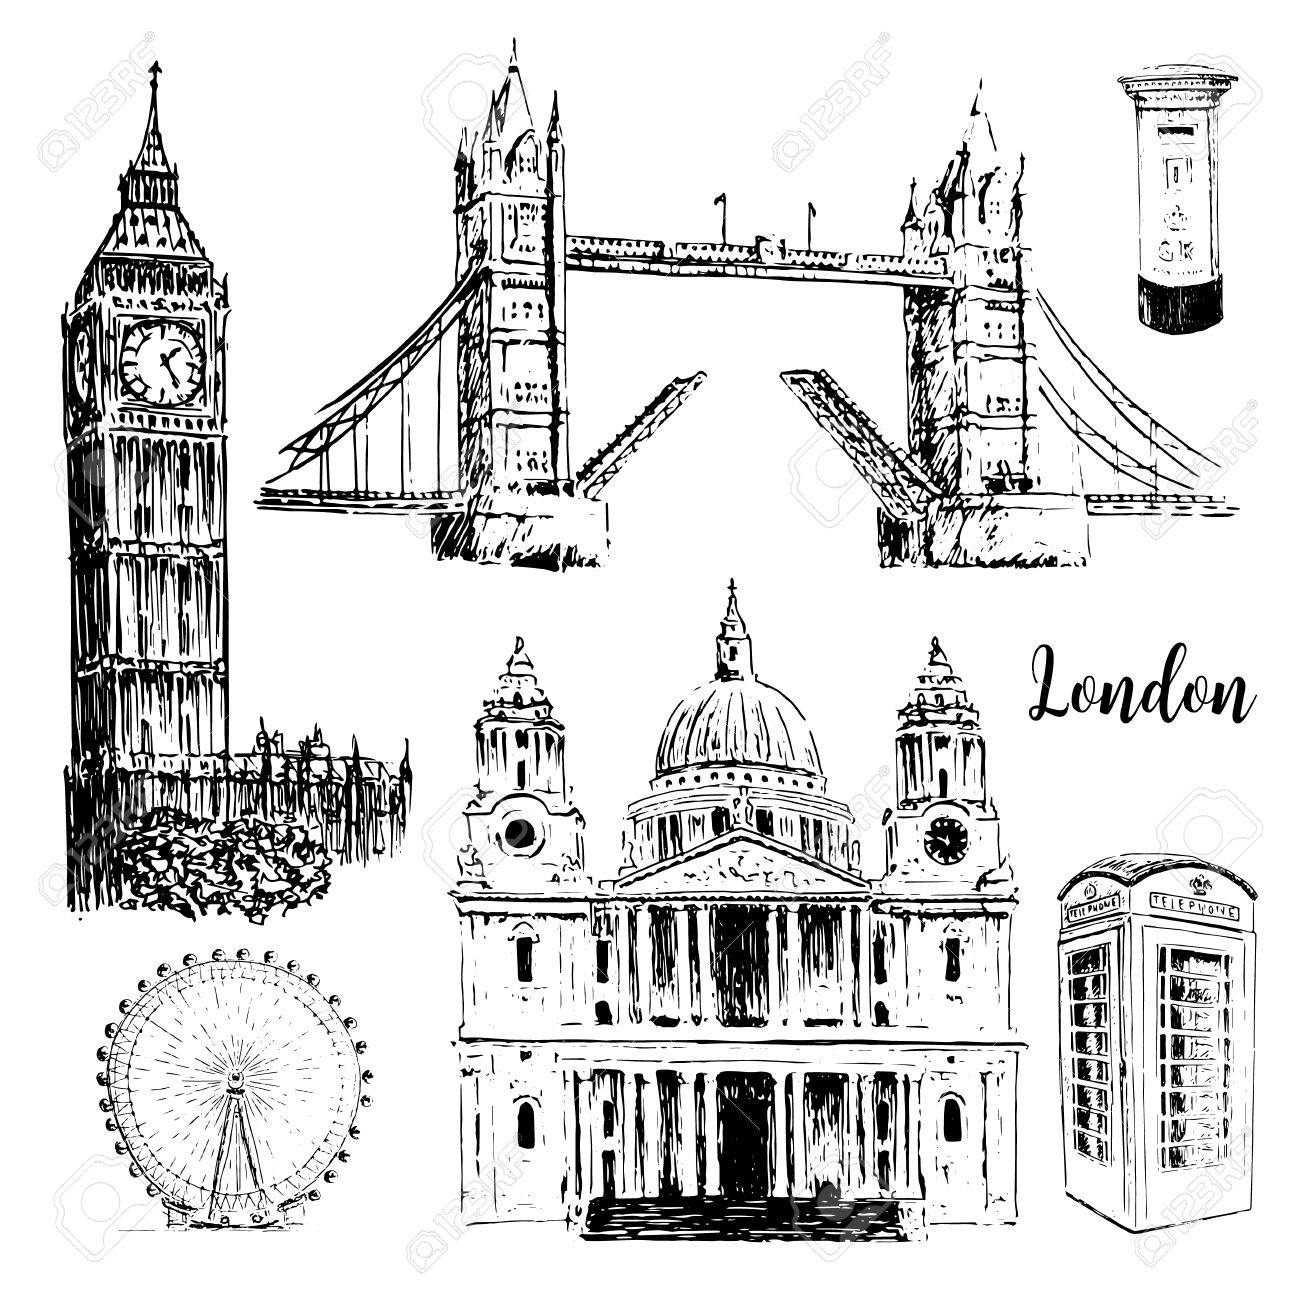 1300x1300 London Architectural Symbols St. Paul Cathedral, Big Ben